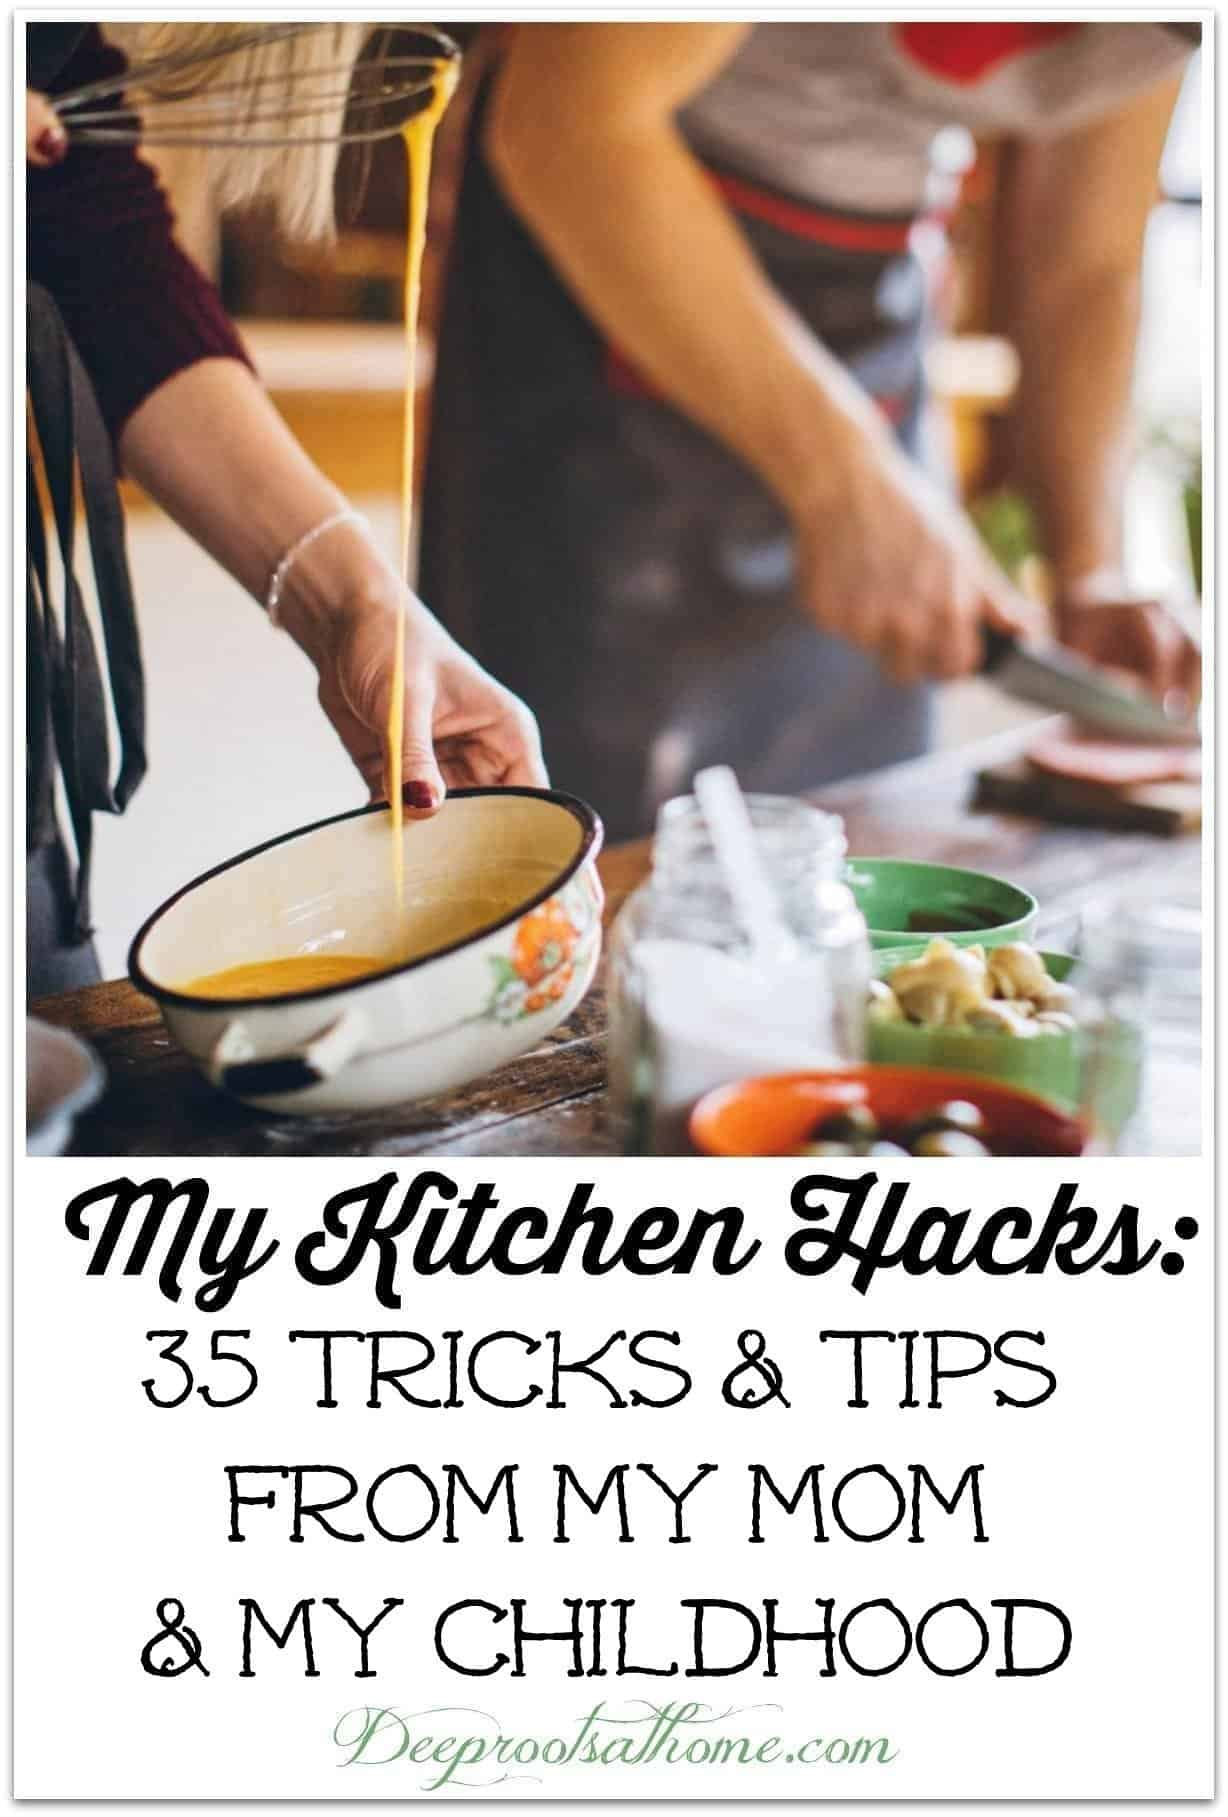 Timeless Kitchen Hacks: 35 Tricks & Tips from My Mom & My Childhood. cooking together